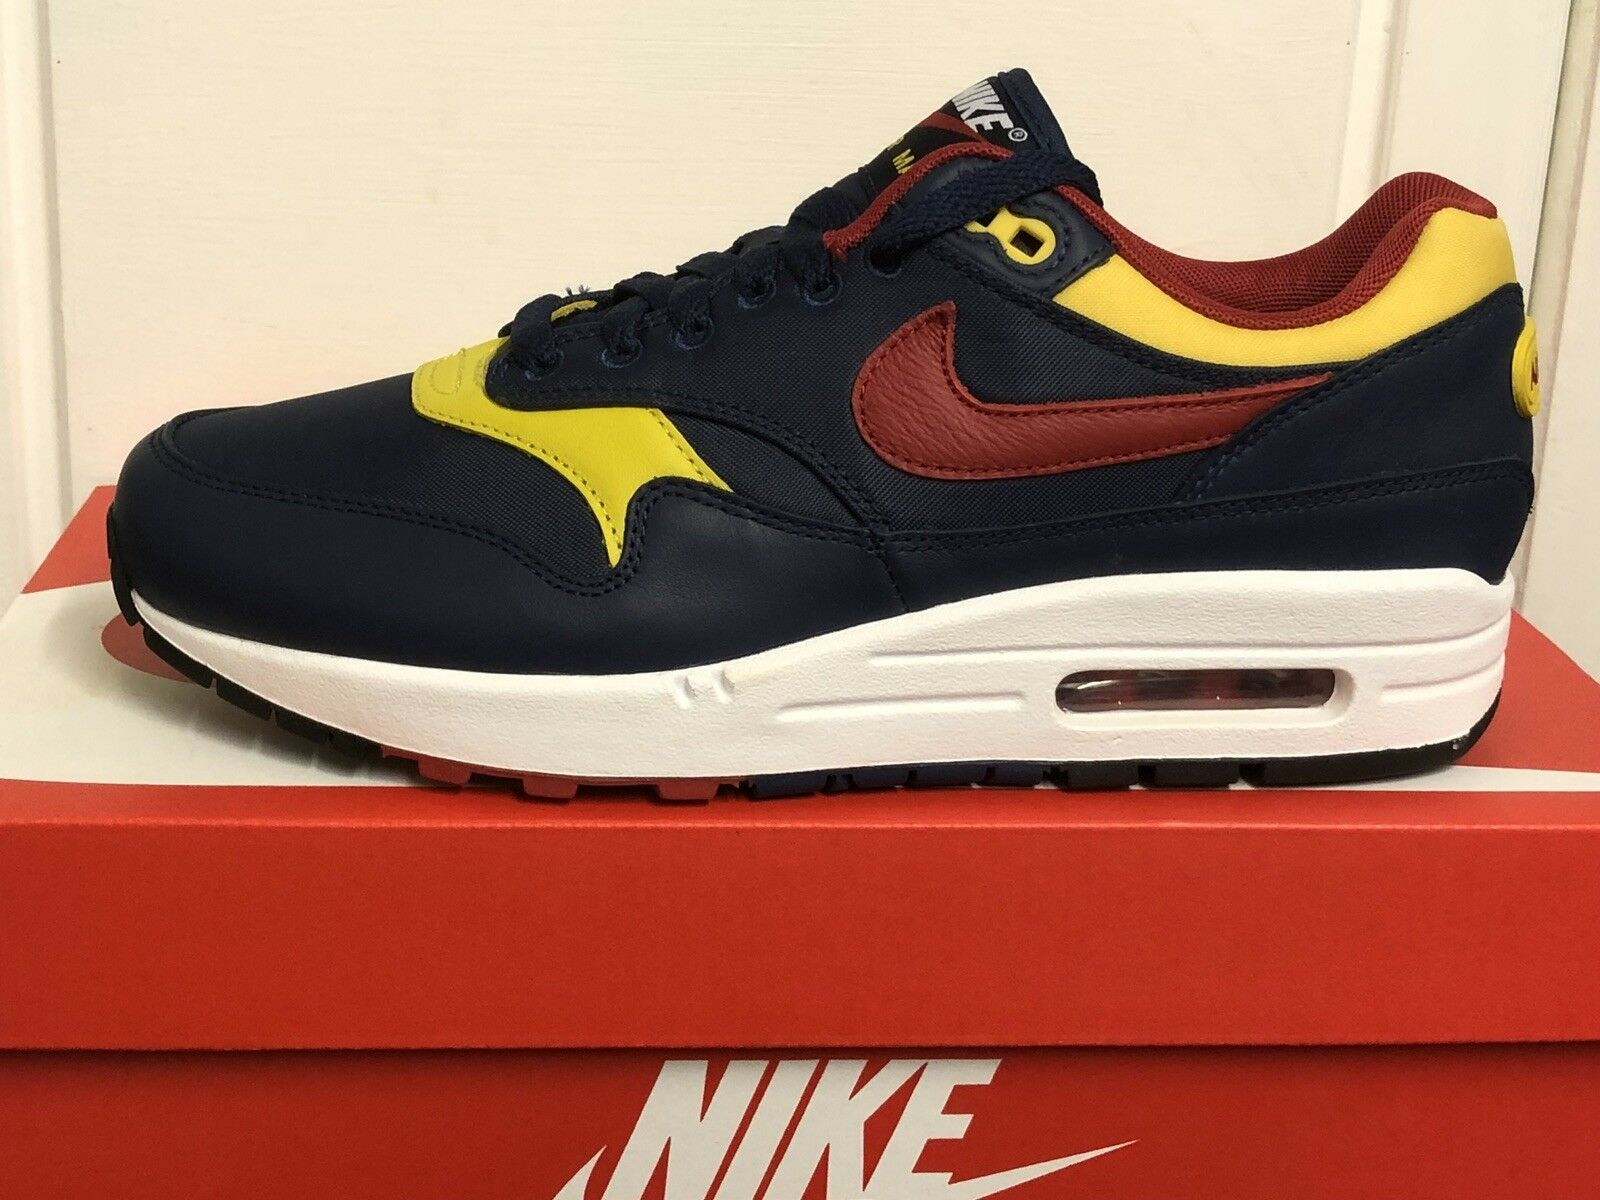 NIKE AIR MAX 1 PREMIUM homme  TRAINERS SNEAKERS chaussures6 EUR 40